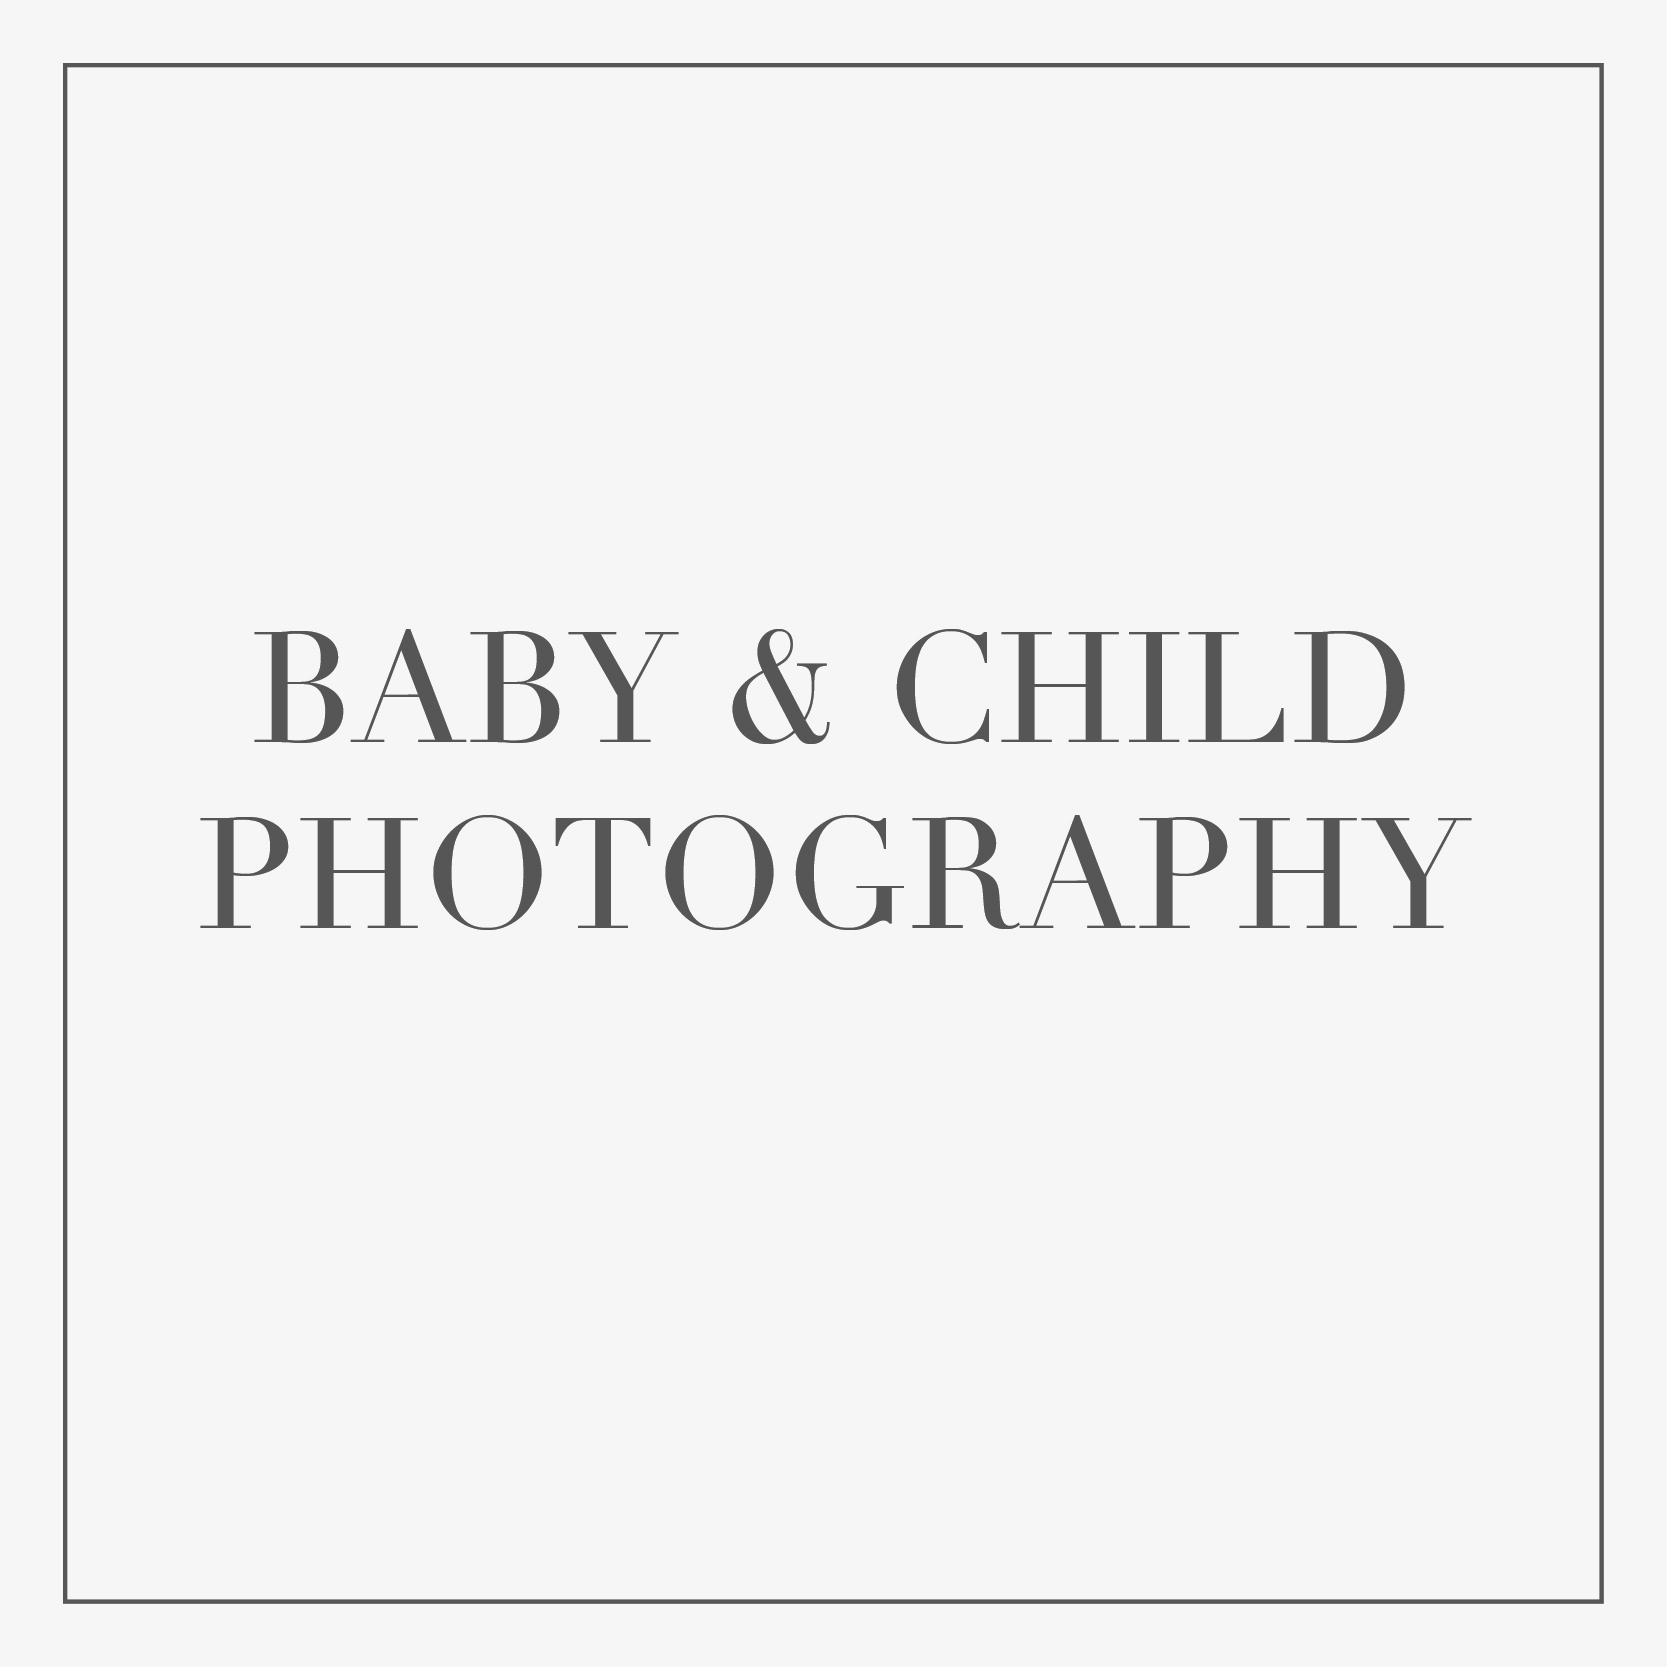 baby_and_child_photography-01.jpg